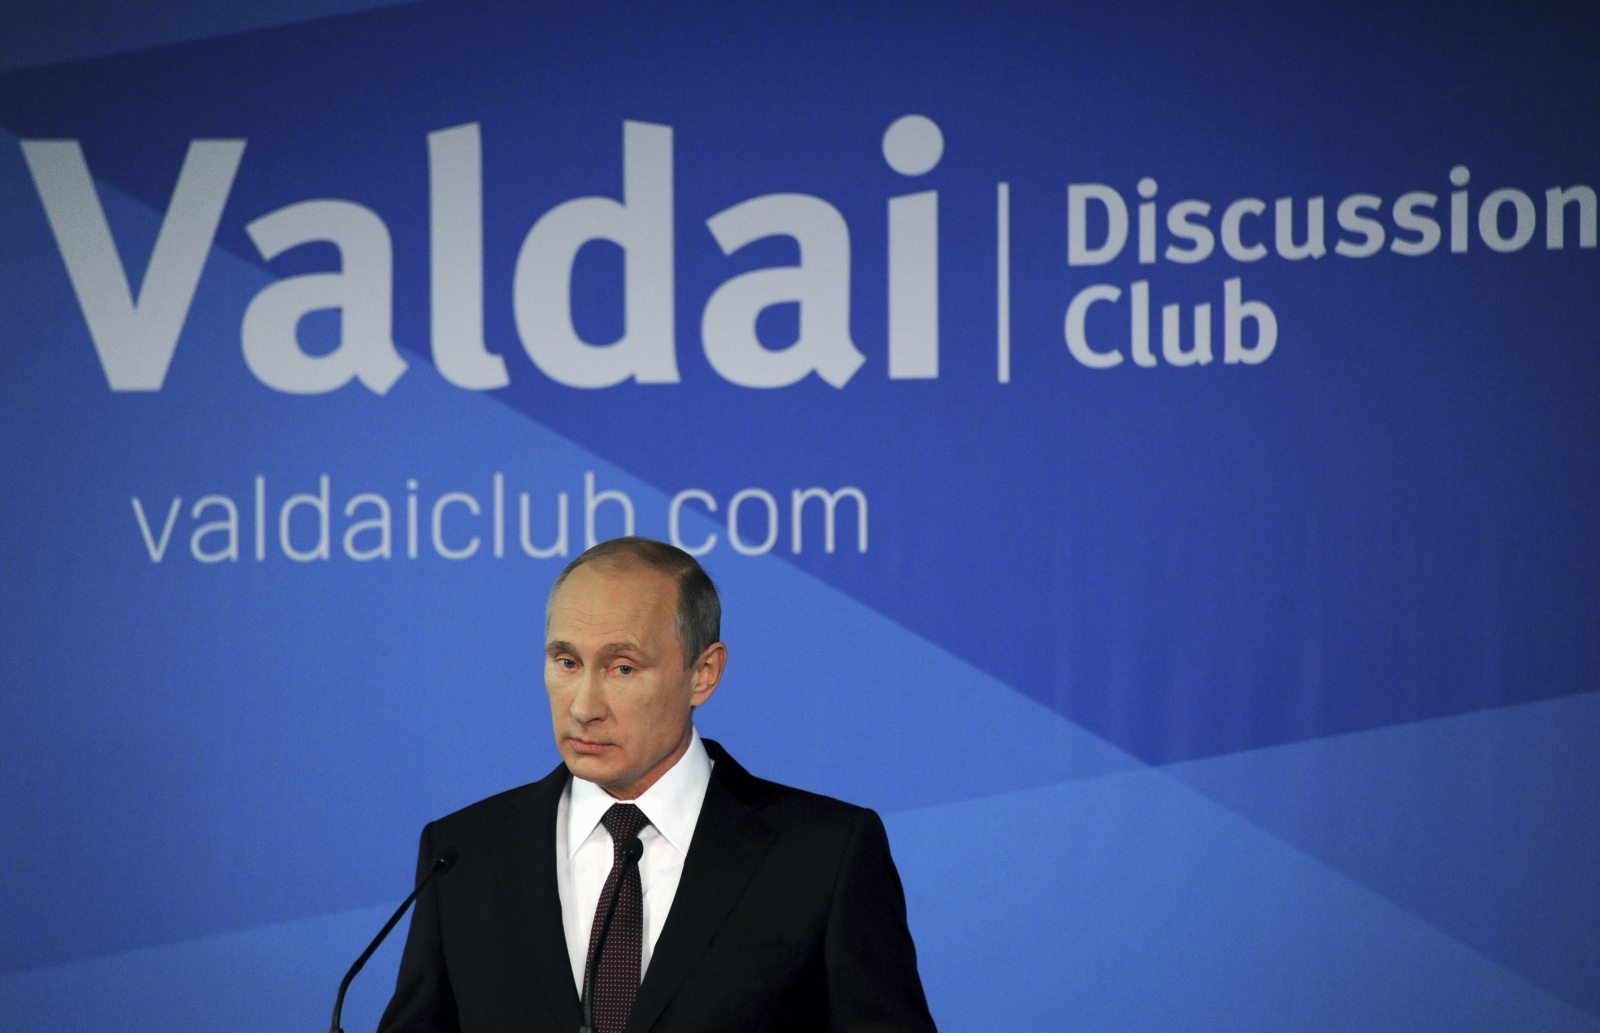 Putin delivers his speech in Sochi (Getty)